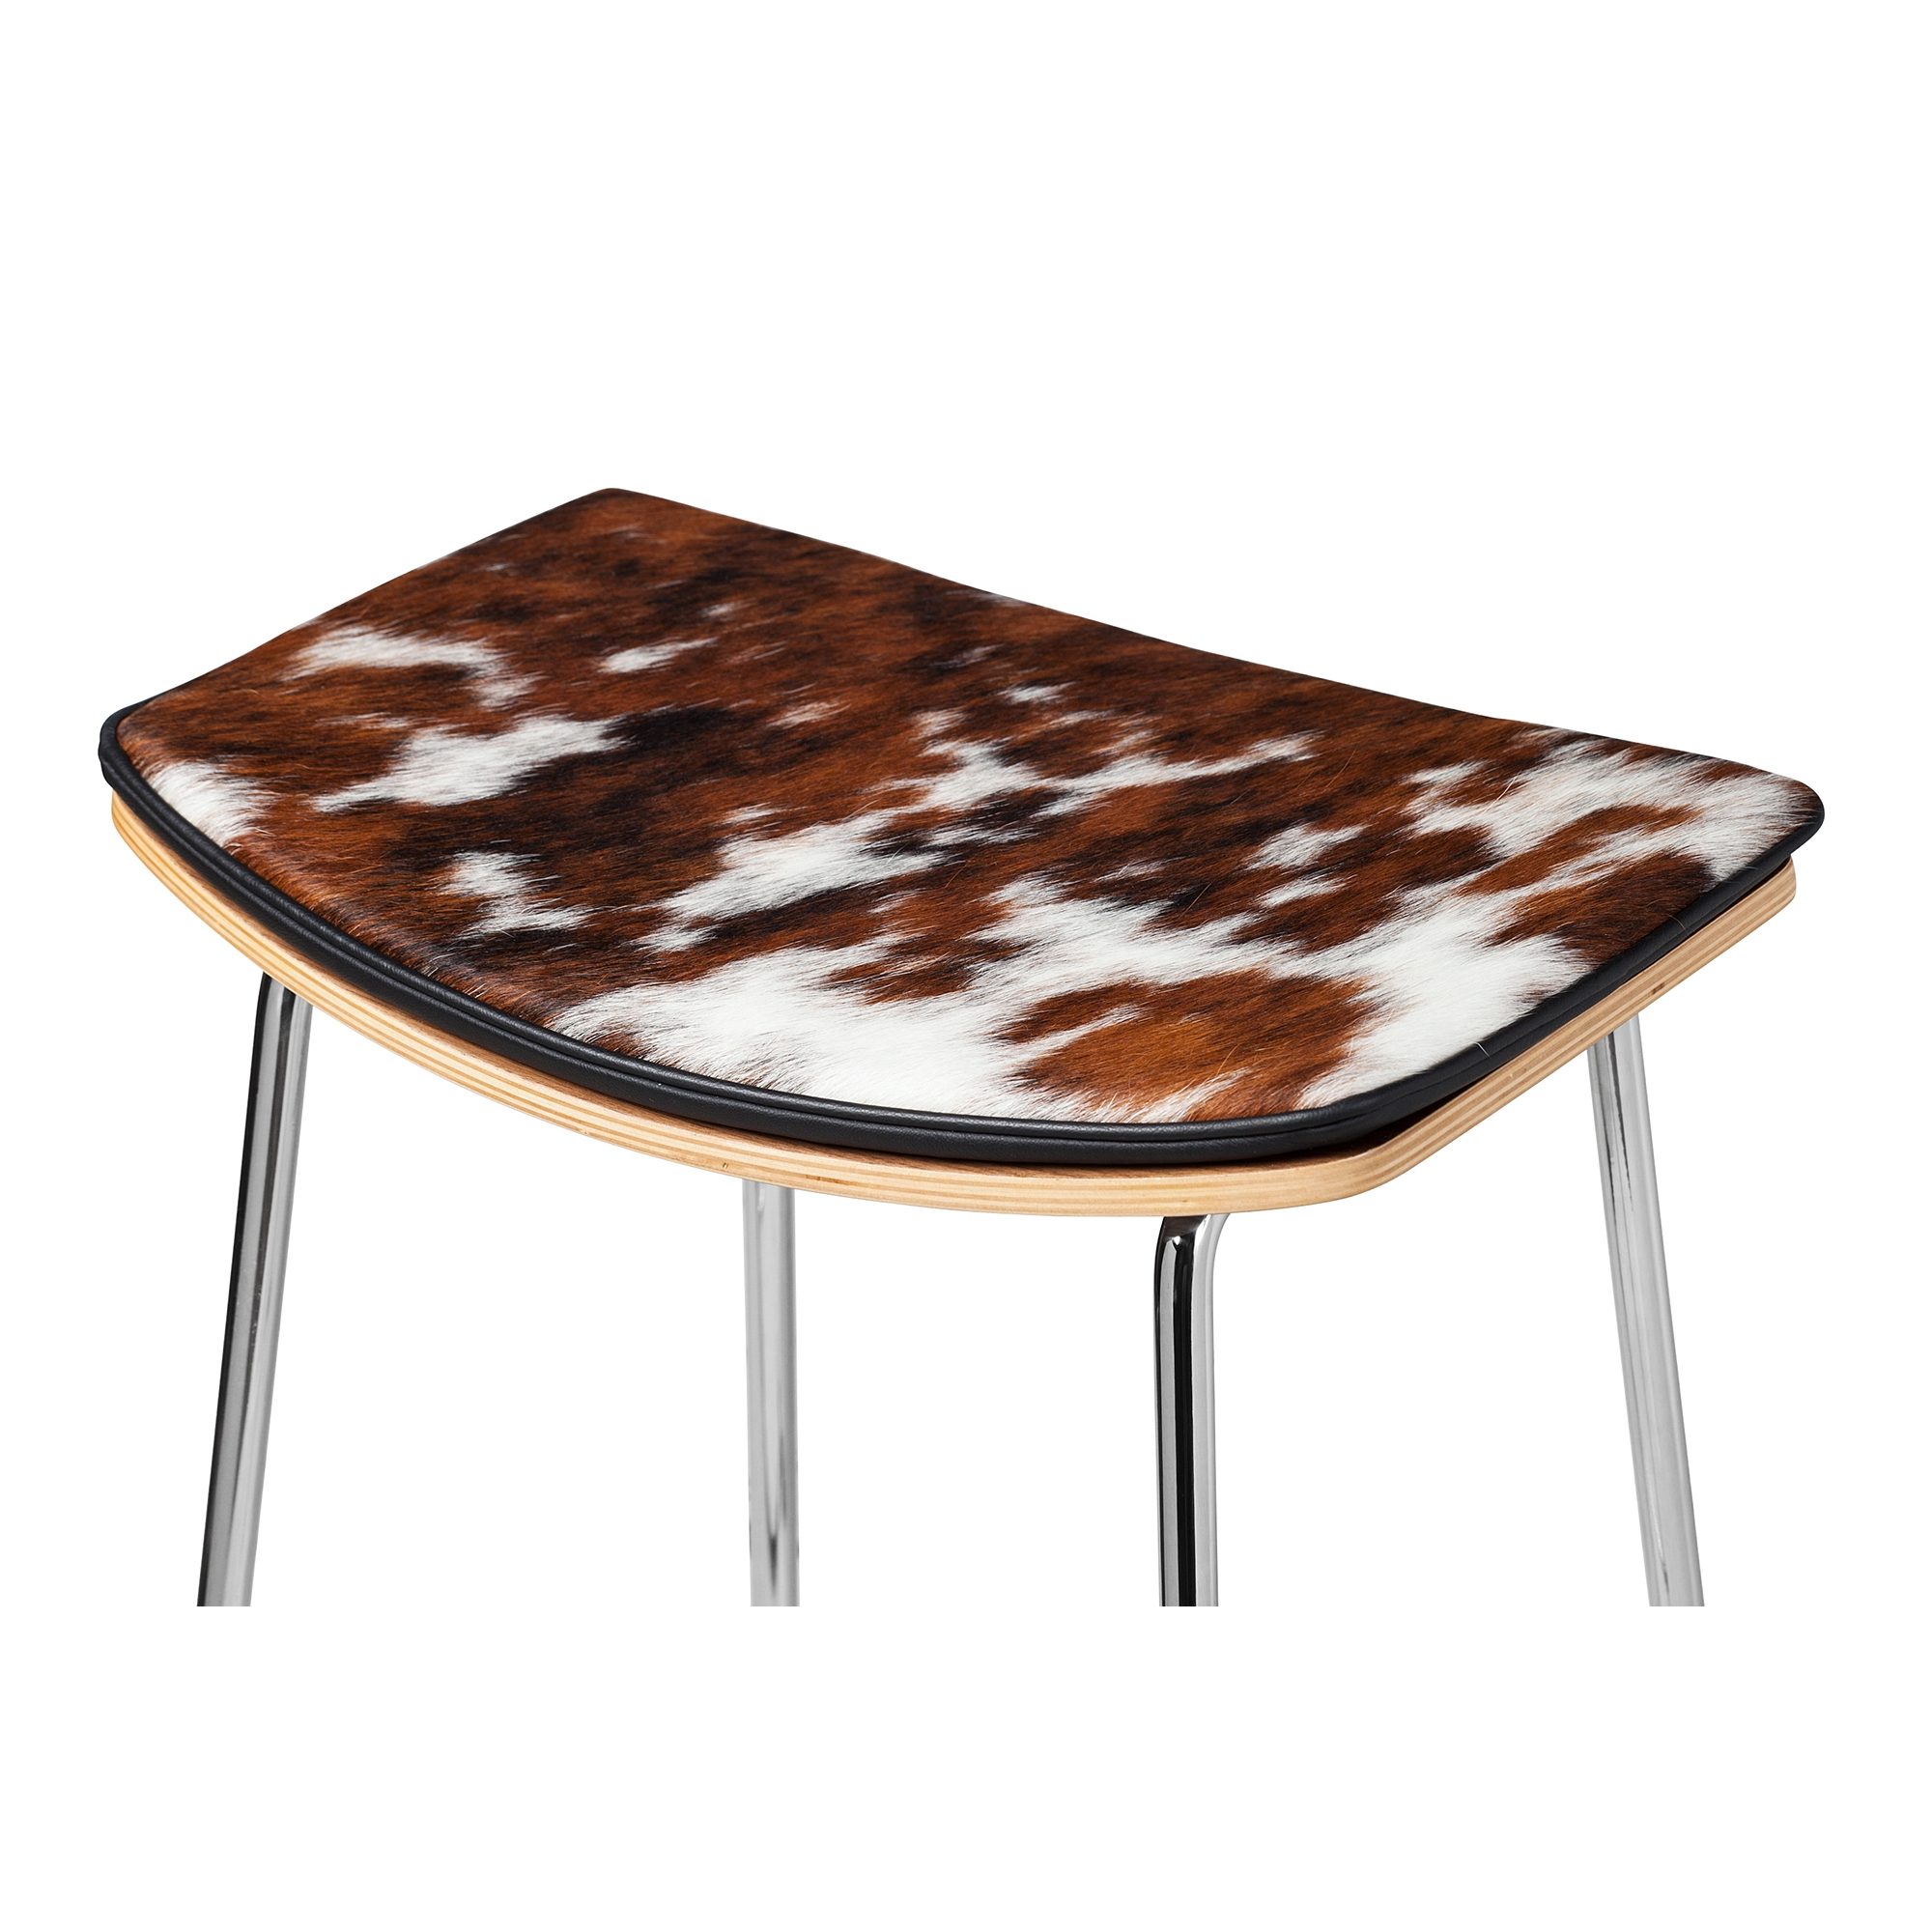 Yvonne Potter Y Design Cowhide Counter Stool - Yvonne Potter Y Design Cowhide Counter Stool, Khazana Home Austin